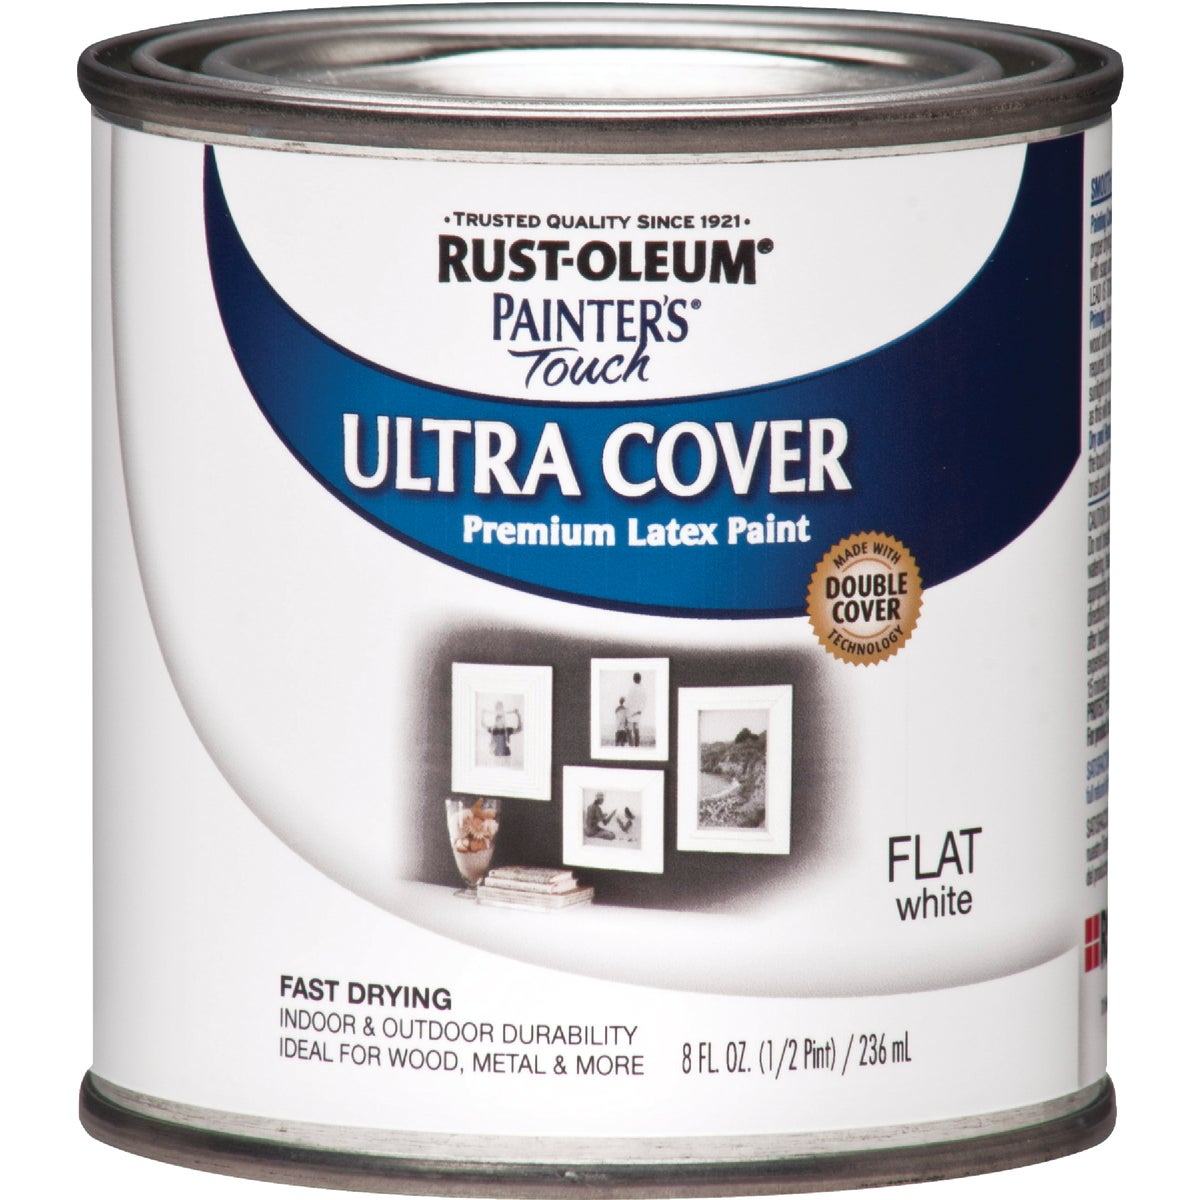 RustOleum Flat White Latex Paint | eBay